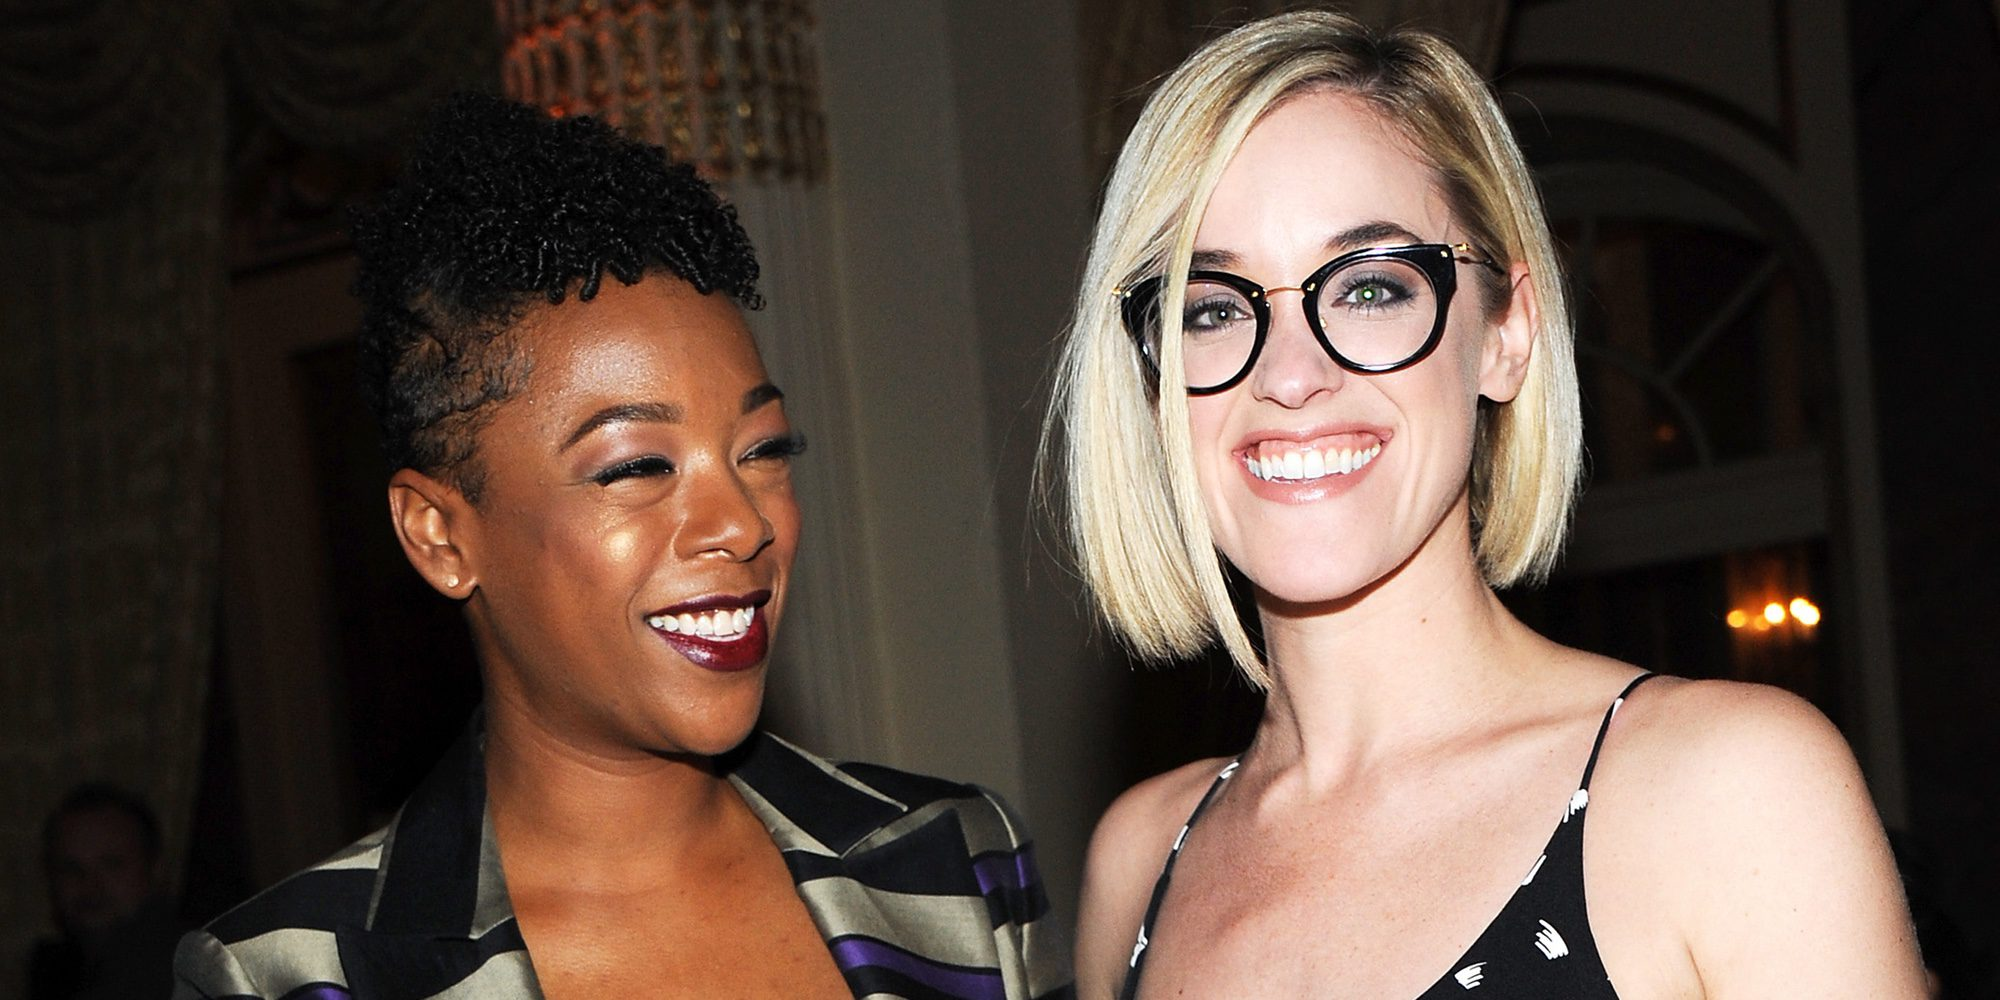 Samira Wiley y Lauren Morelli ('Orange Is The New Black') se casan en una ceremonia íntima en Palm Springs